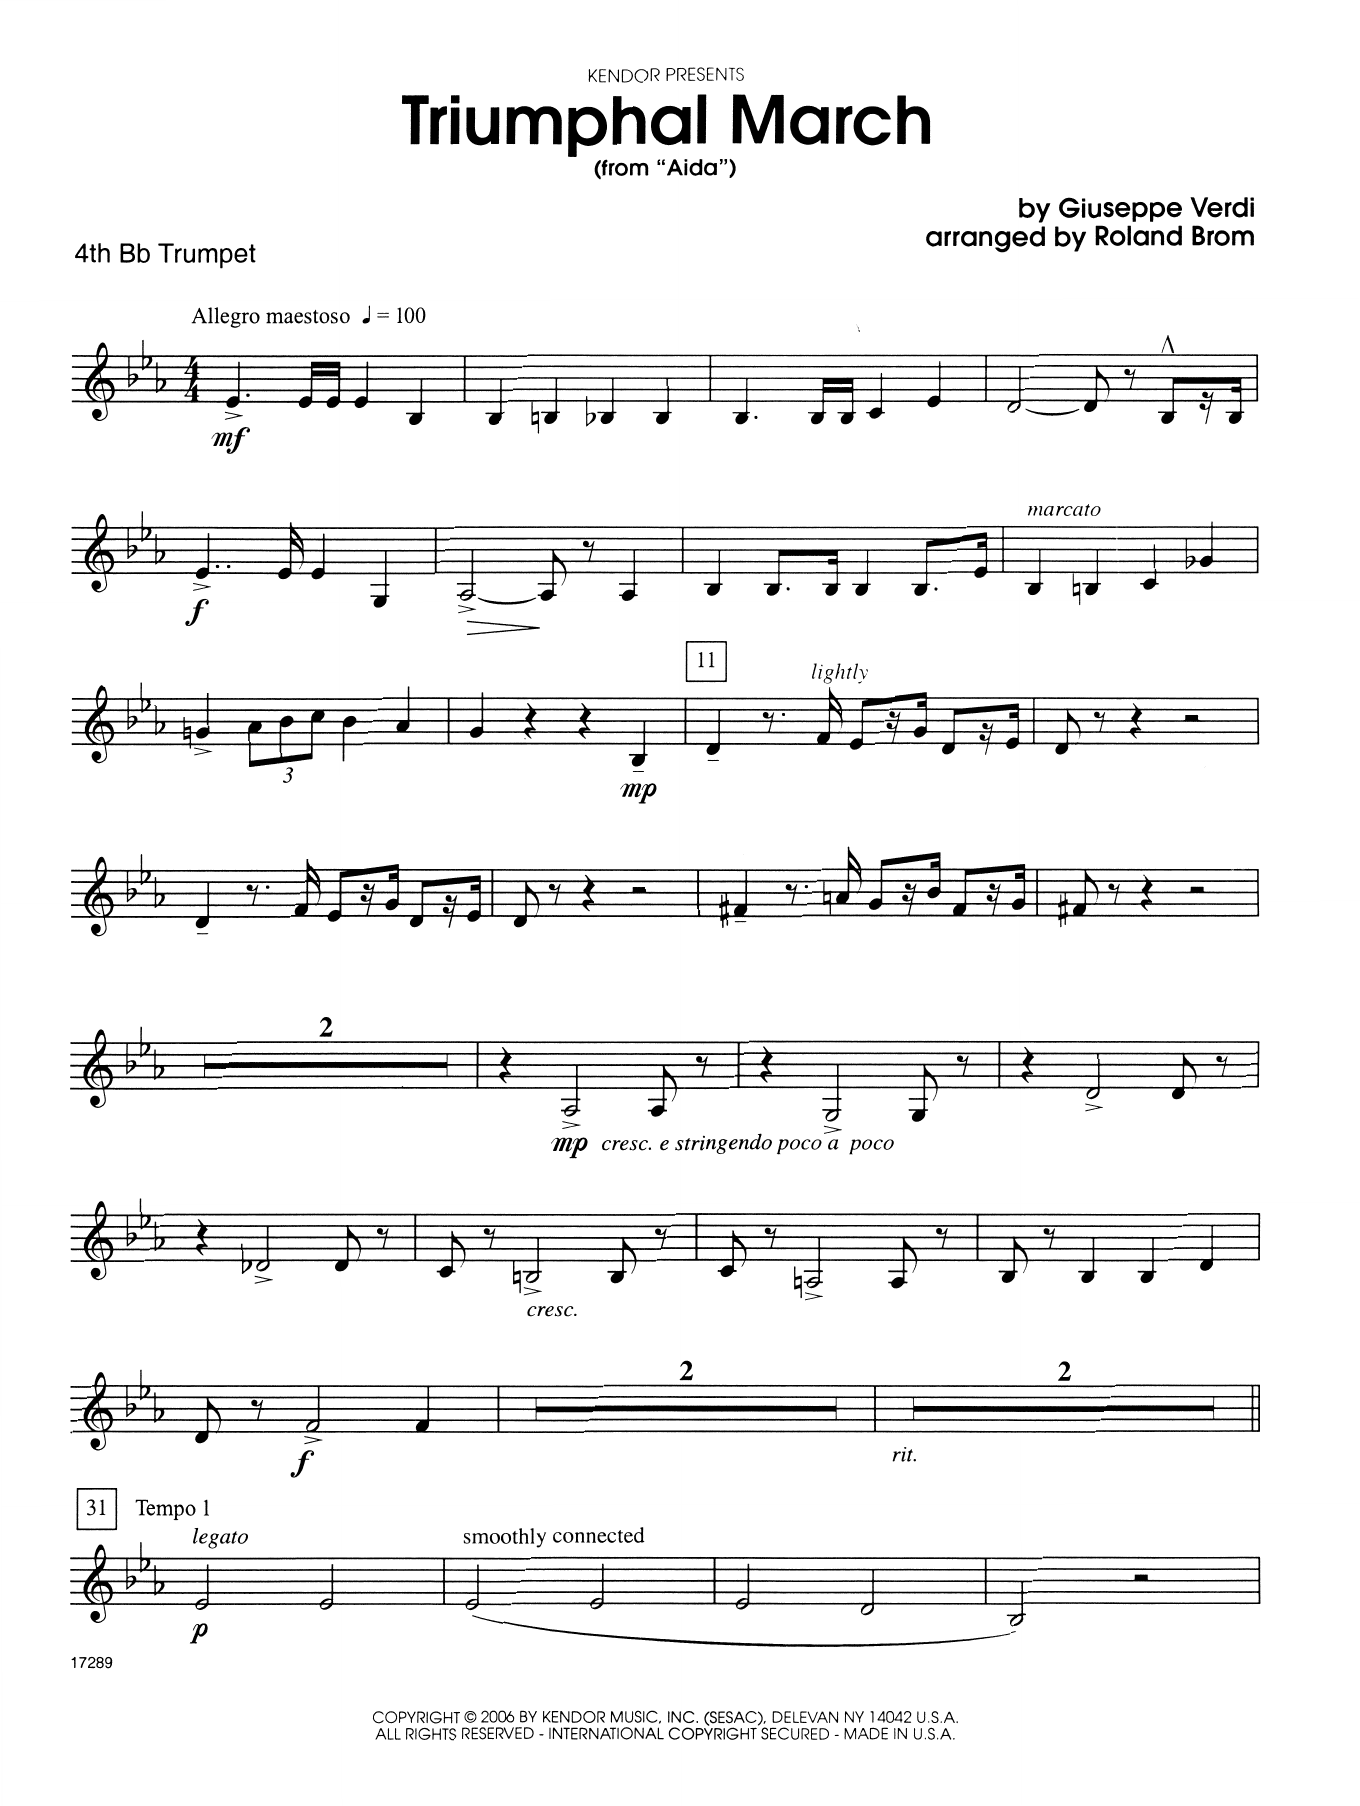 Roland Brom Triumphal March (from Aida) - 4th Bb Trumpet sheet music notes printable PDF score